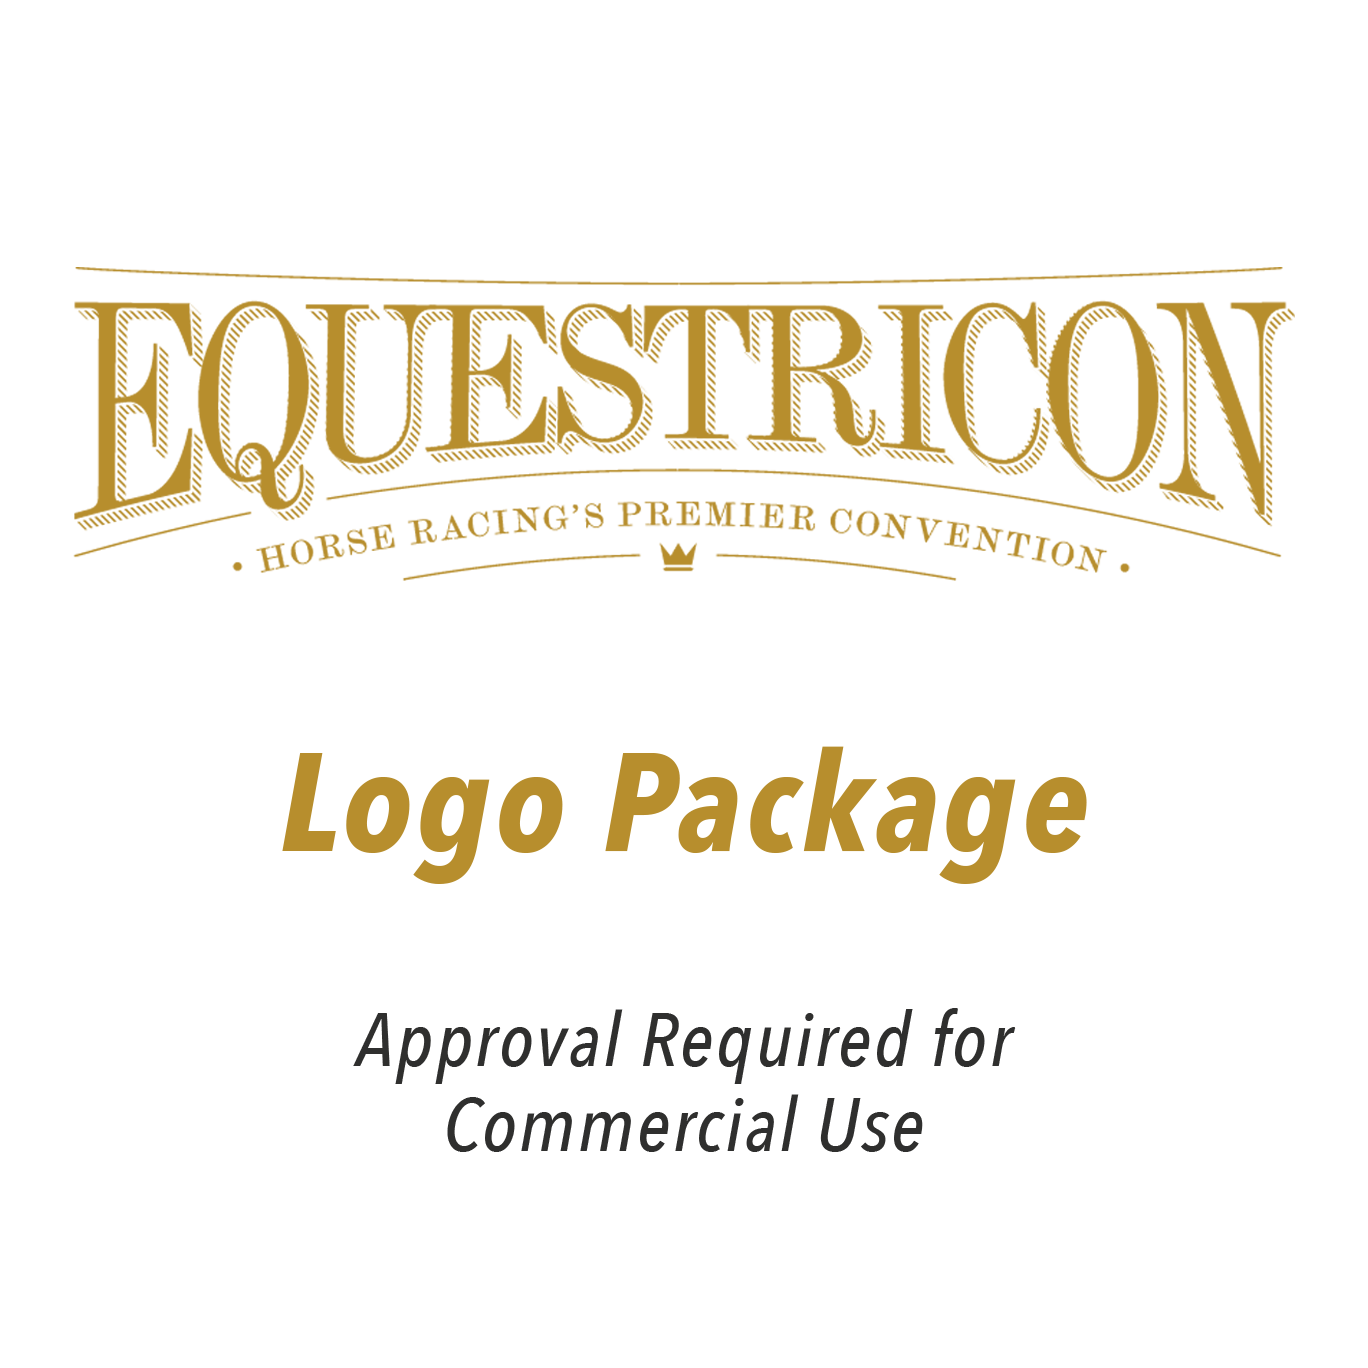 Equestricon_LogoPackage_grAPHIC.png